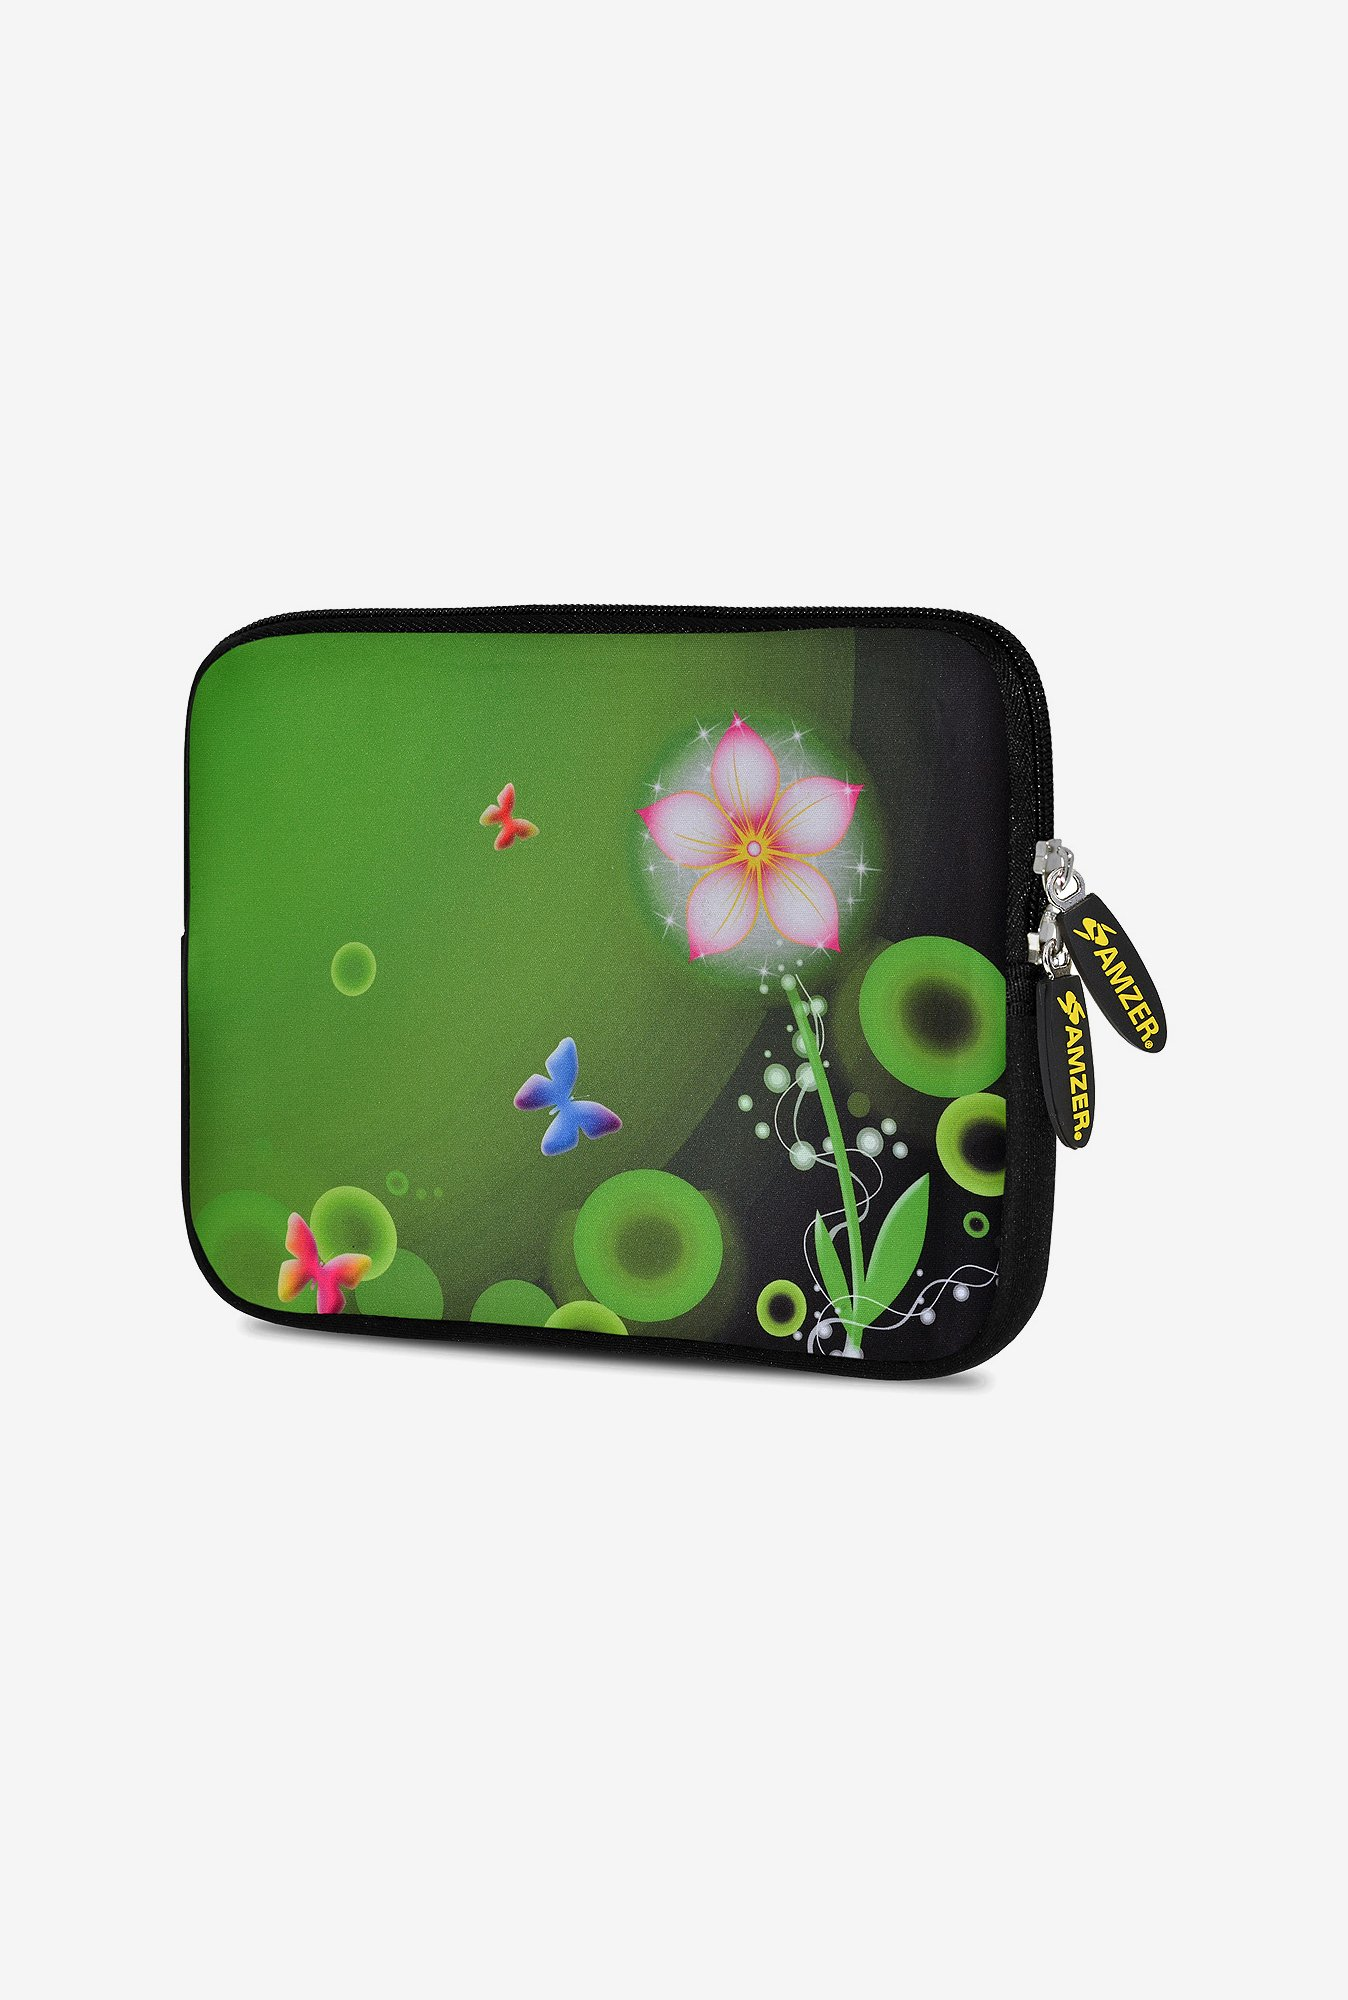 Amzer 10.5 Inch Neoprene Sleeve - Daisy Dream